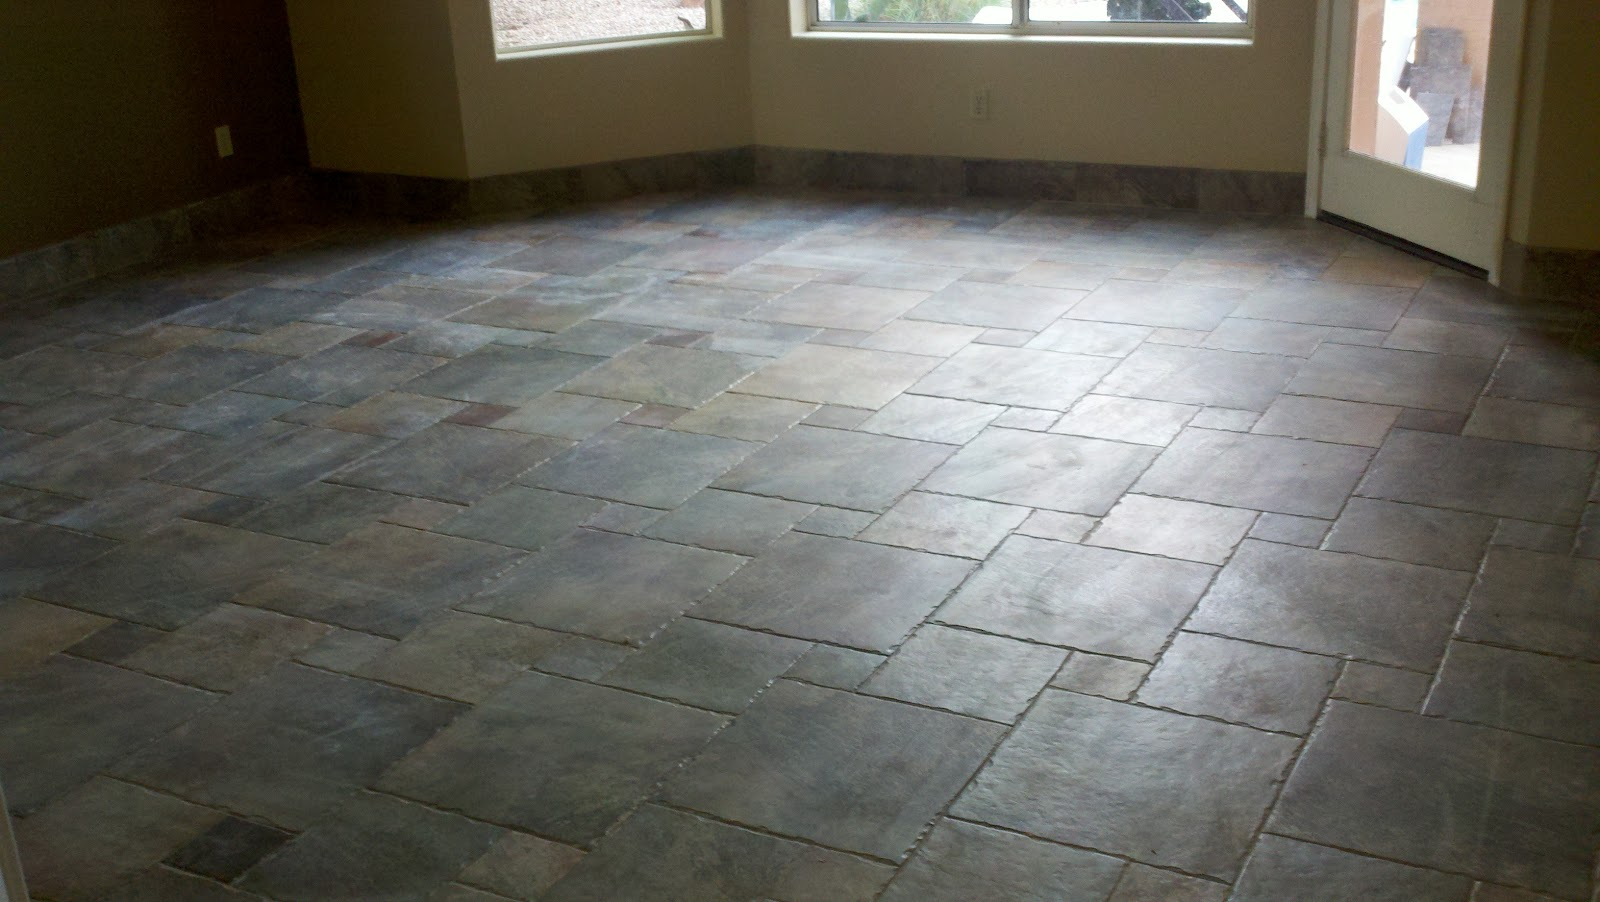 Barton tile llc porcelain tile with 20x20 6x6 and 13x13 for 13x13 floor tile